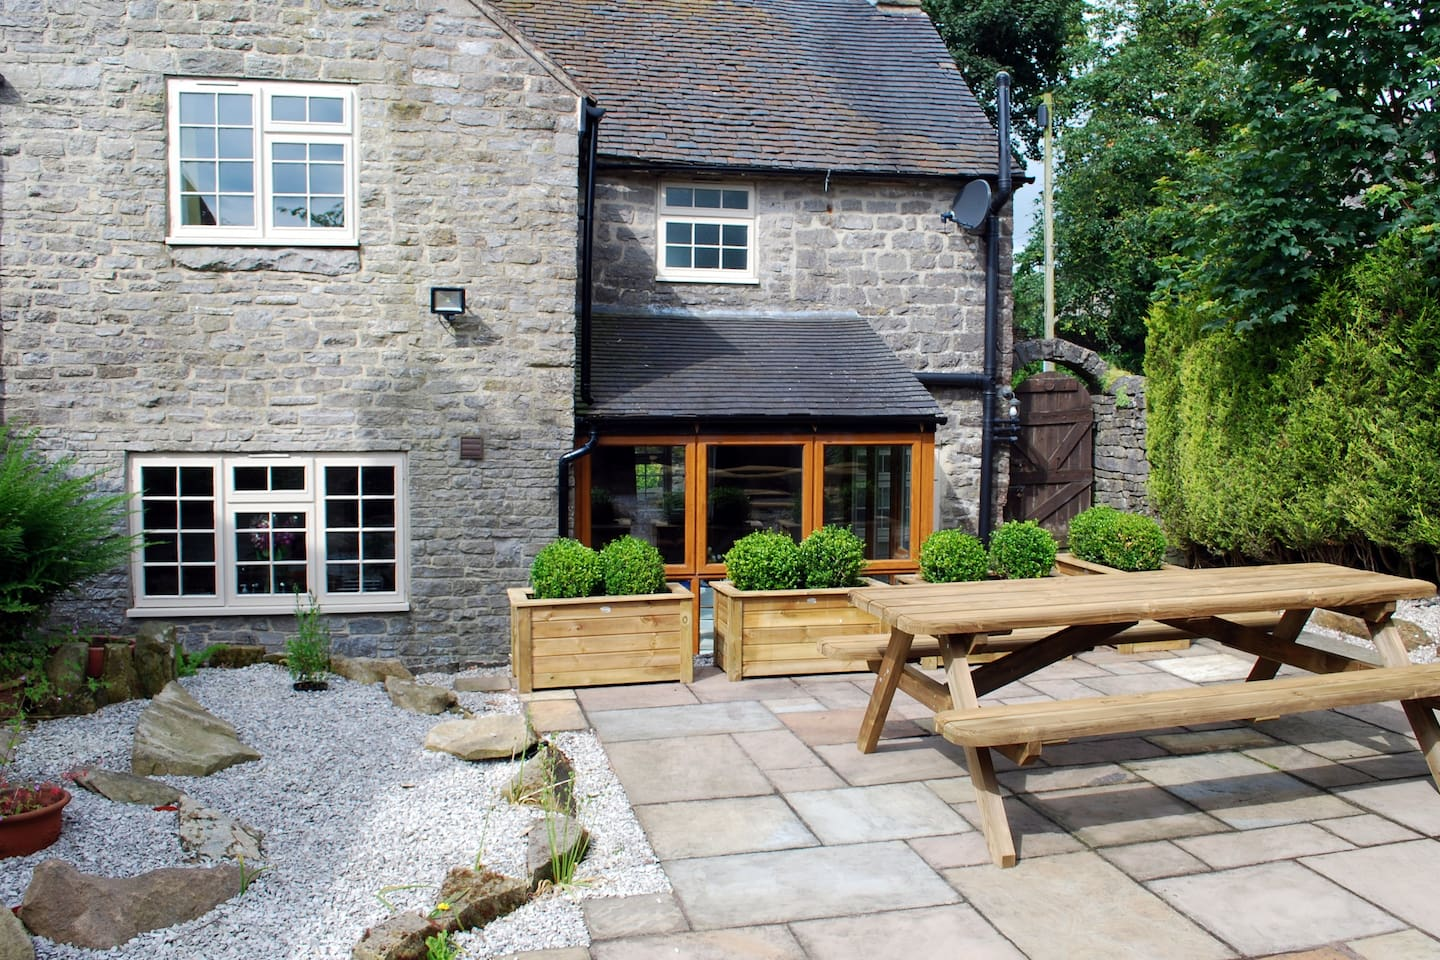 Stone Cottage, Wetton Nr Hartington / Ashbourne